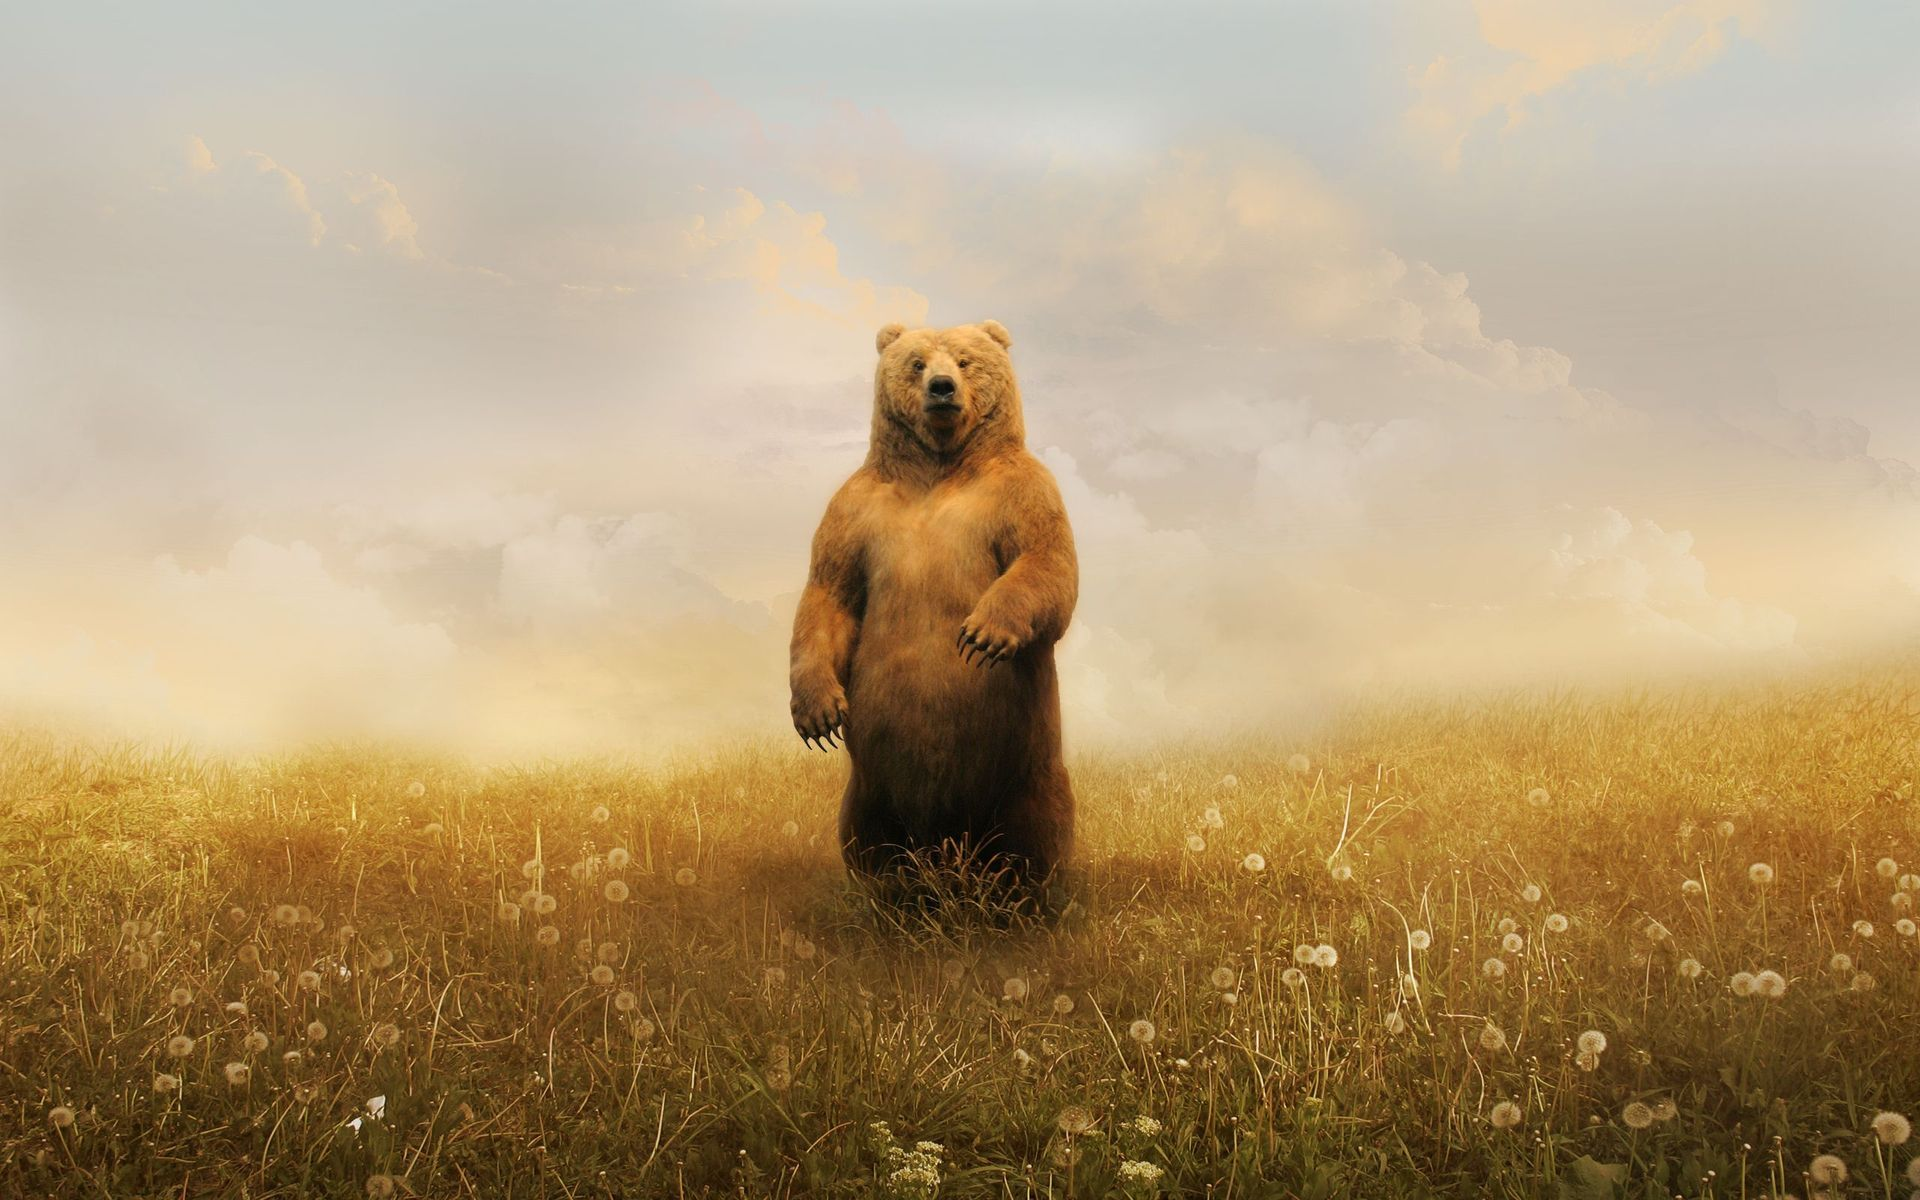 bear standing up | inked | pinterest | bear wallpaper, bear art and